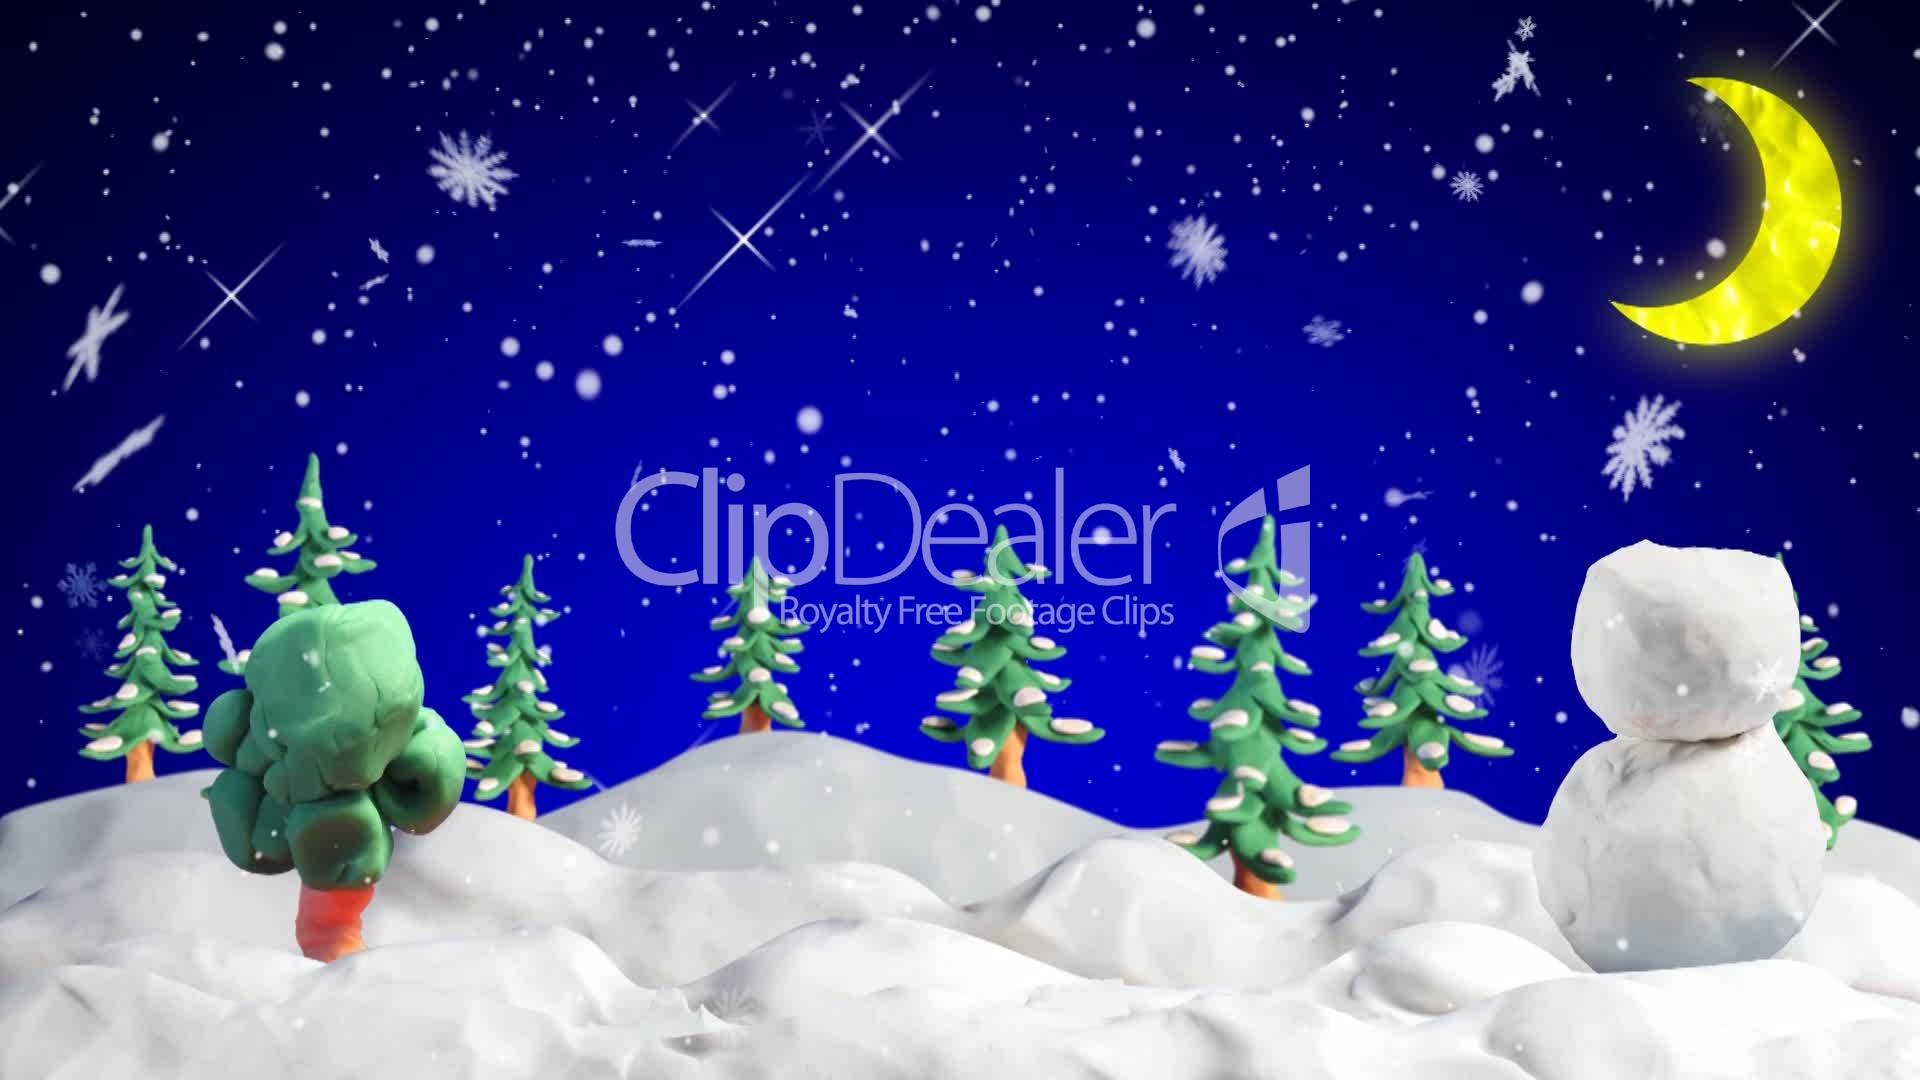 Merry Christmas Clay Greetings Loopable Scene Royalty Free Video